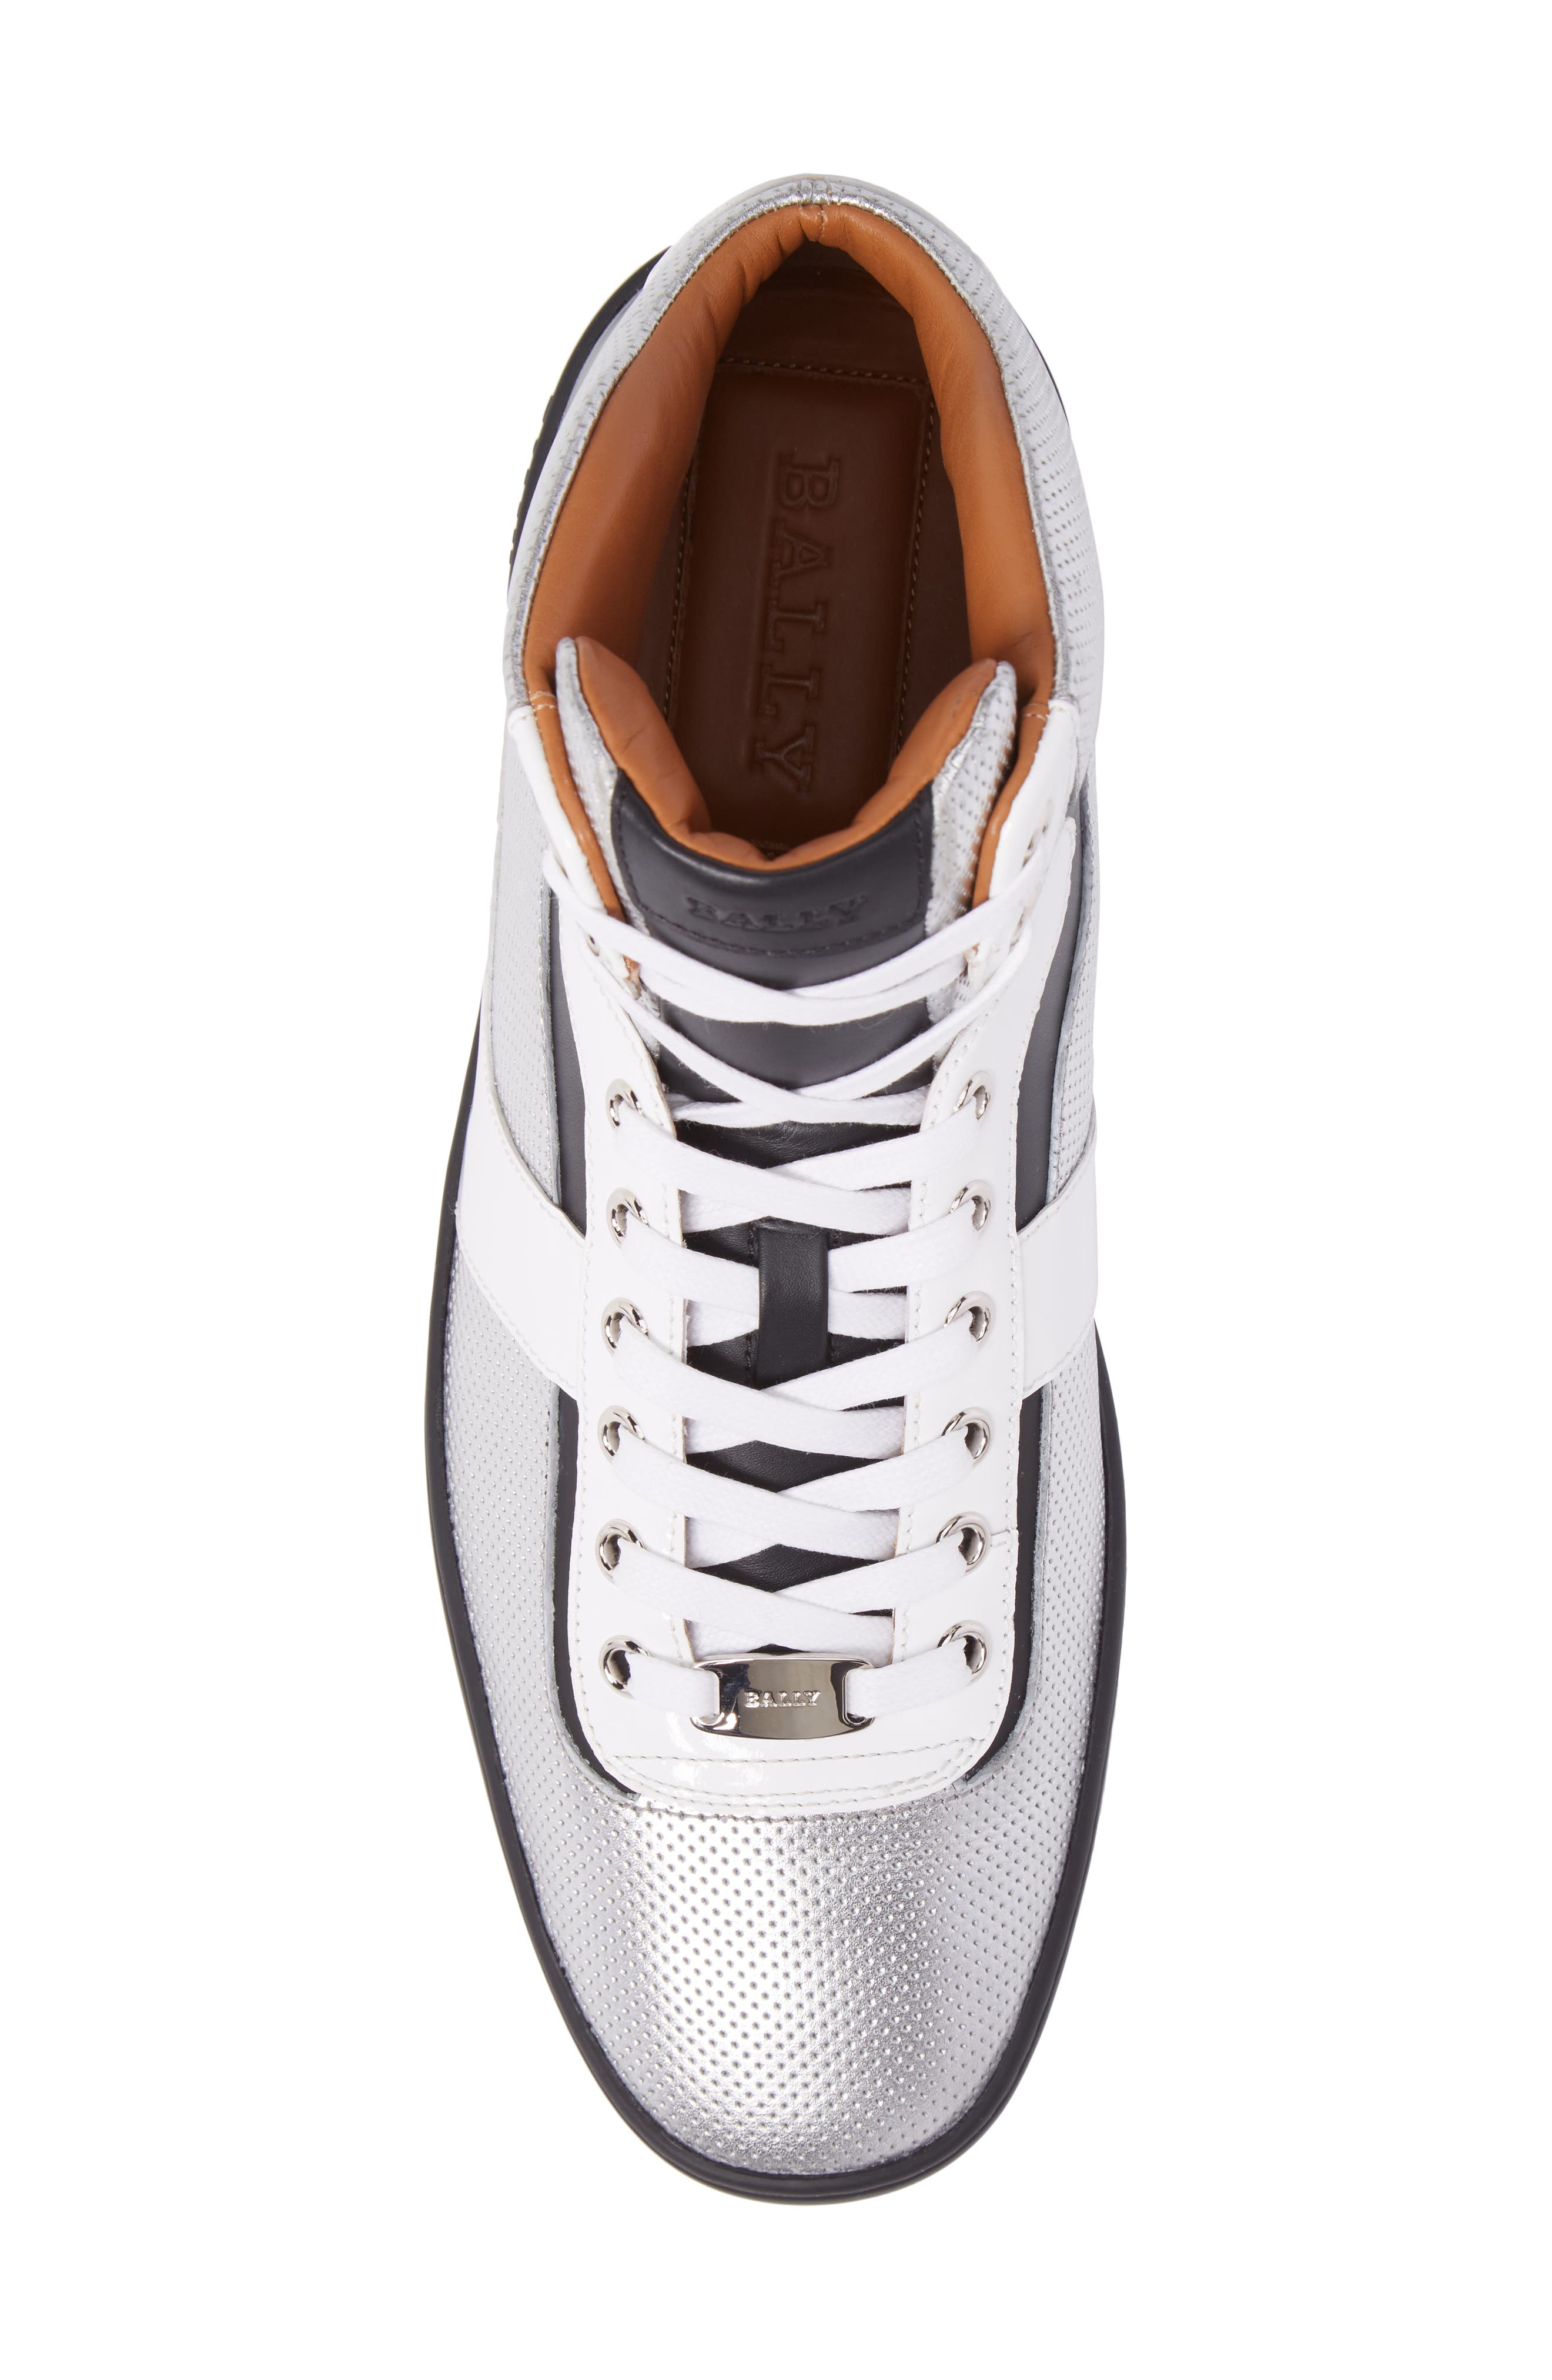 Eroy High Top Sneaker,                             Alternate thumbnail 5, color,                             Silver